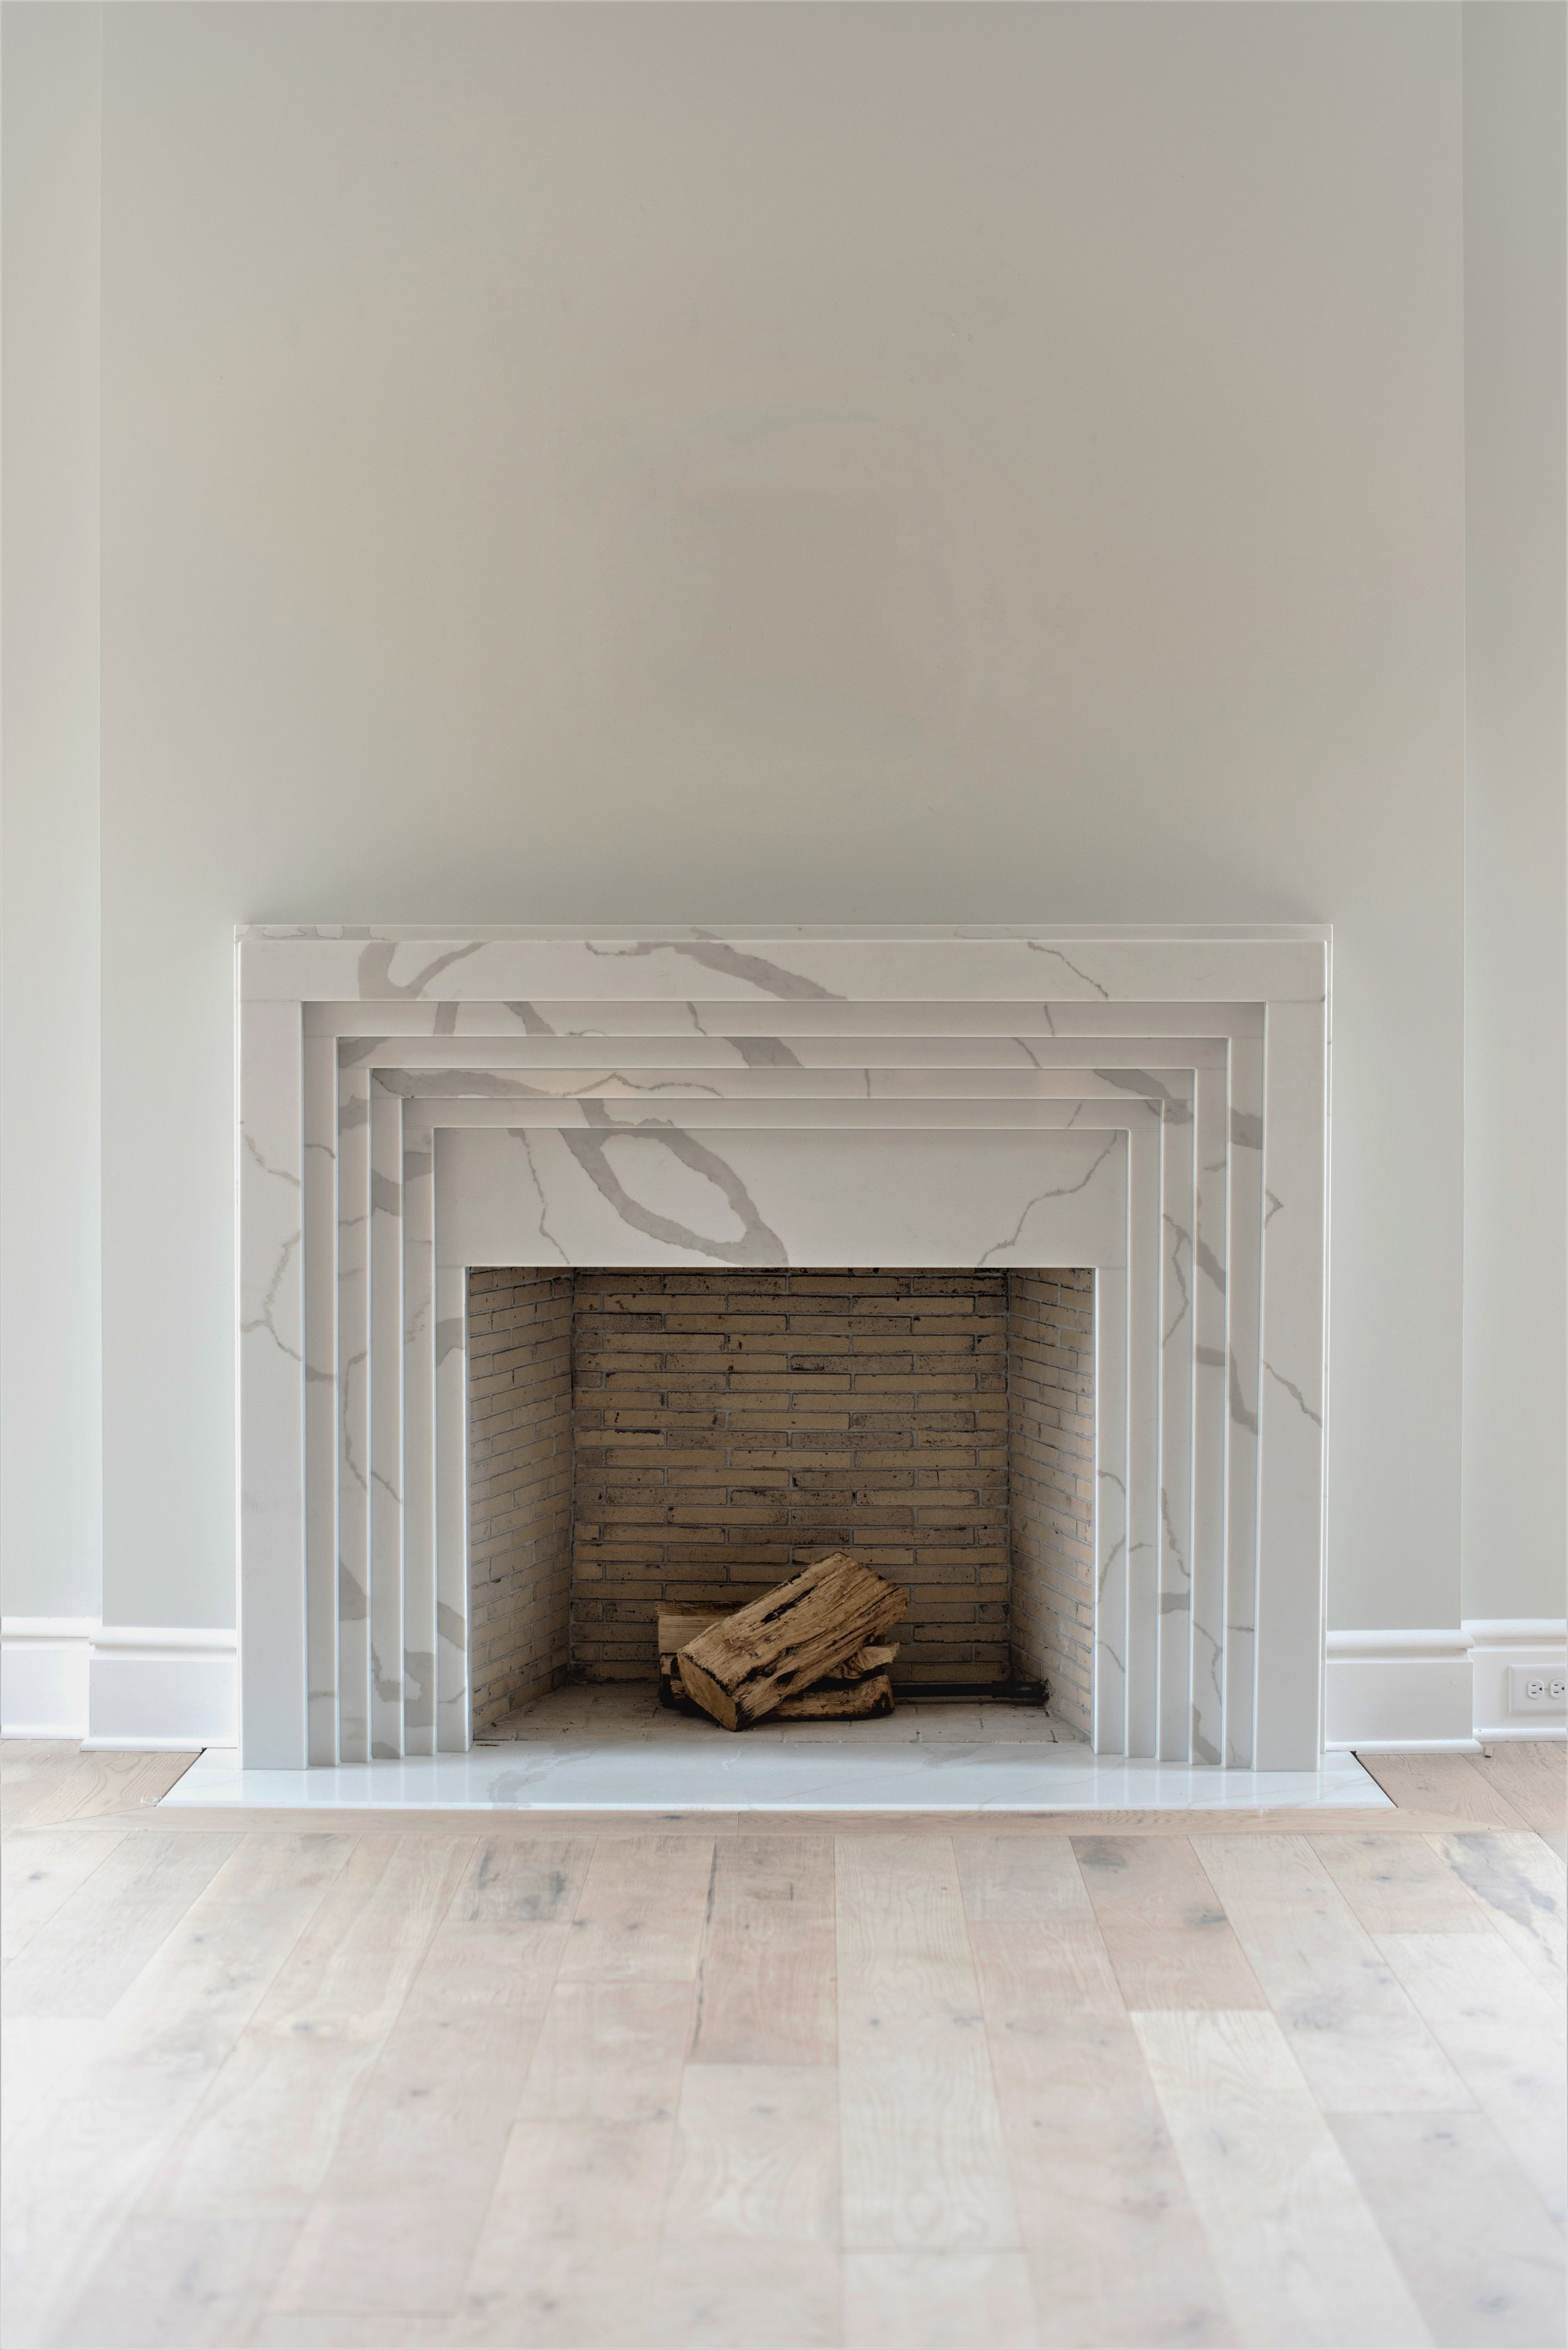 1 Fireplace Omore_Showhouse_Voce_01-(ZF-4798-09230-1-001) (1) (1).jpg